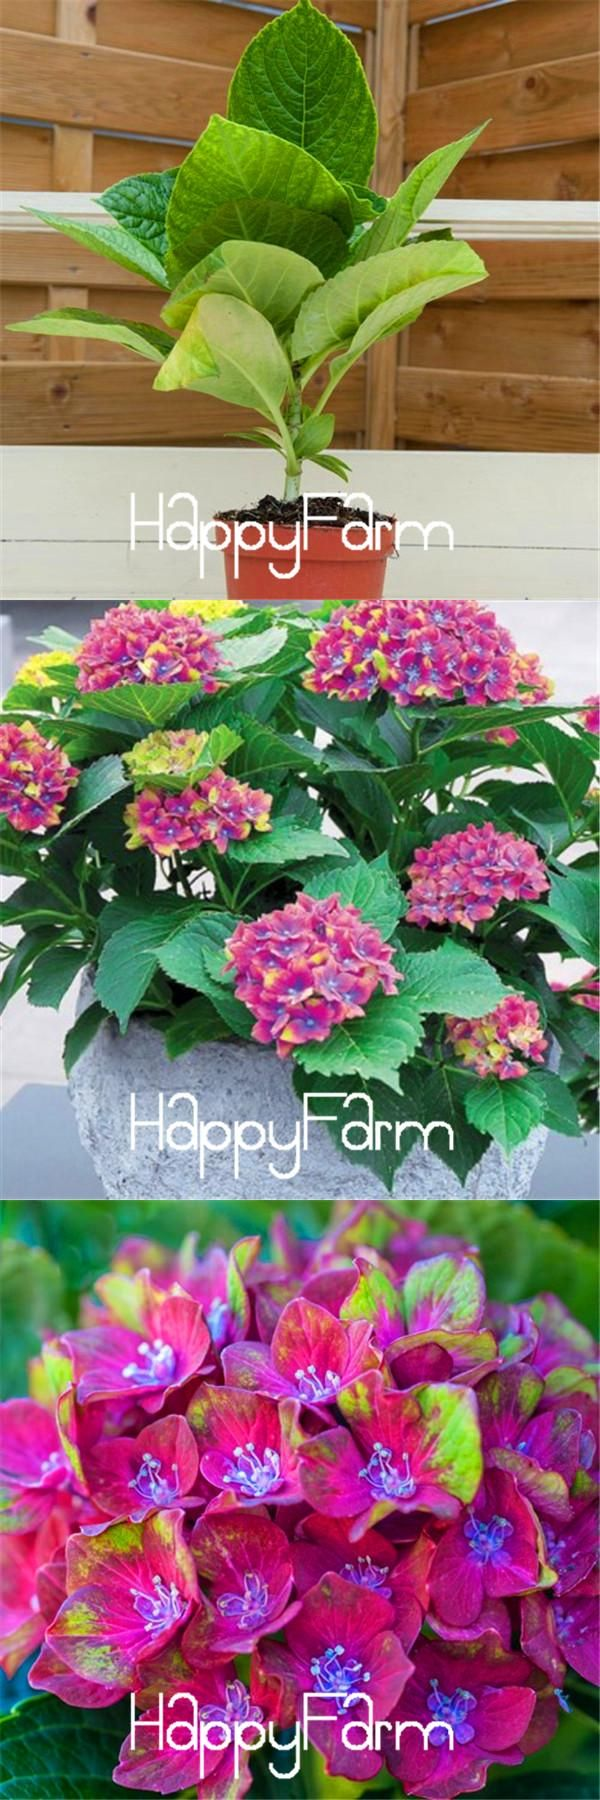 100pcs/lot Hydrangea macrophylla 'Magical Collection' seeds Bonsai potted plant DIY home garden free shipping,CG810Z